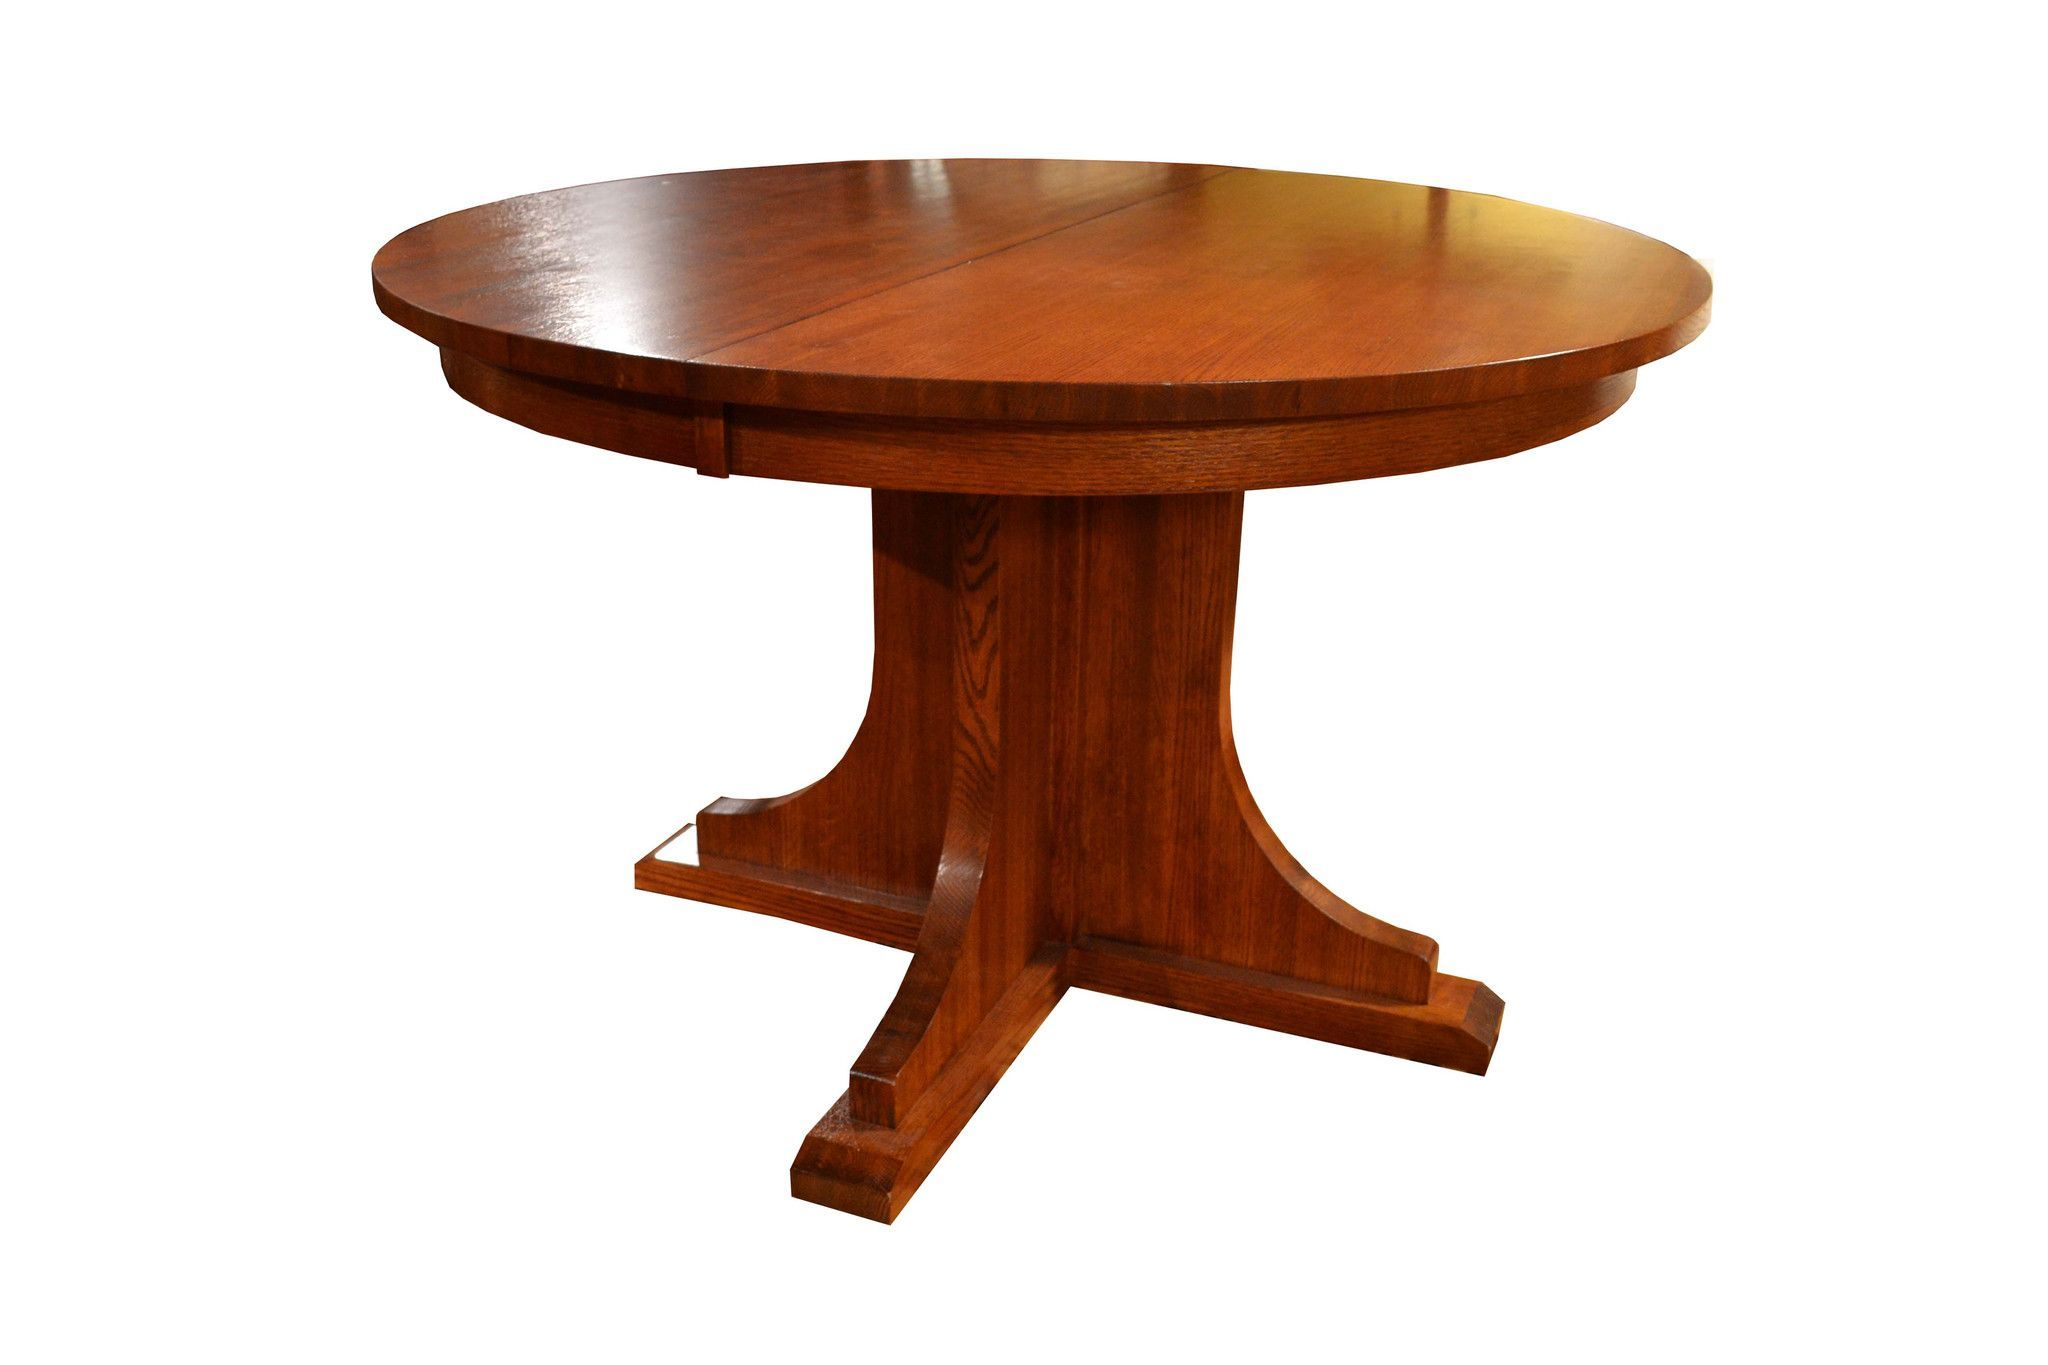 Solid Oak Round Dining Table With 2 Leaves Round Dining Table Wood Table Diy Craftsman Dining Tables